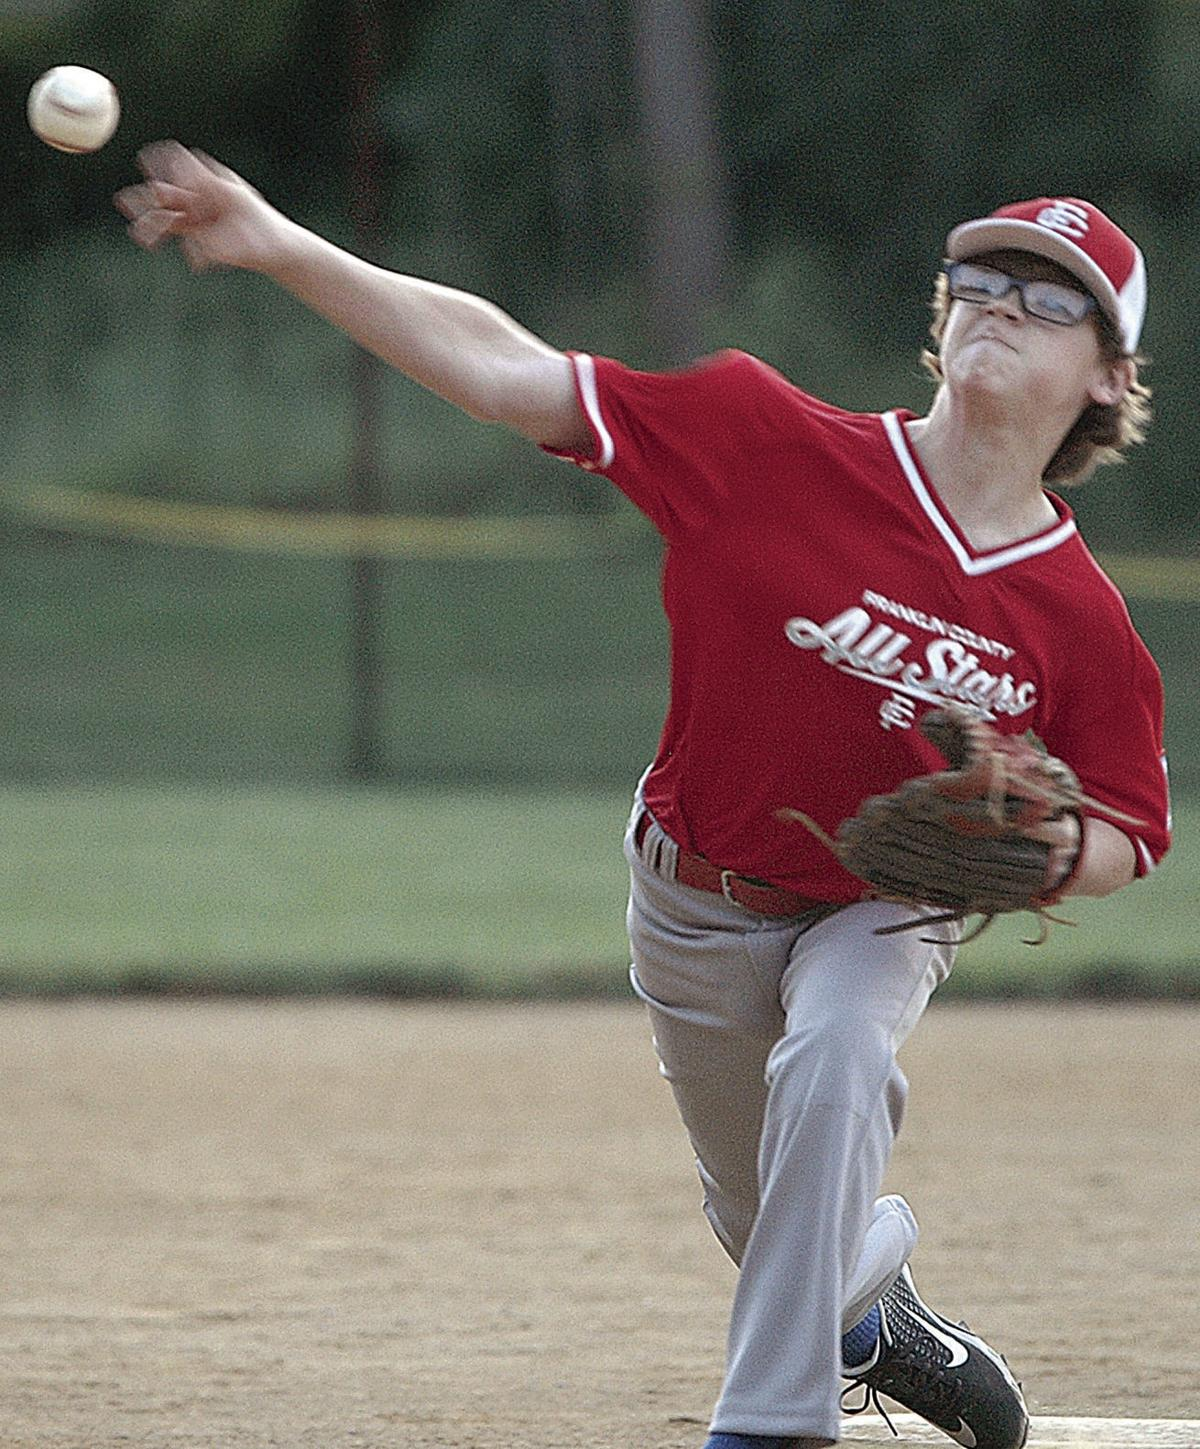 Franklin County All-Star teams in action